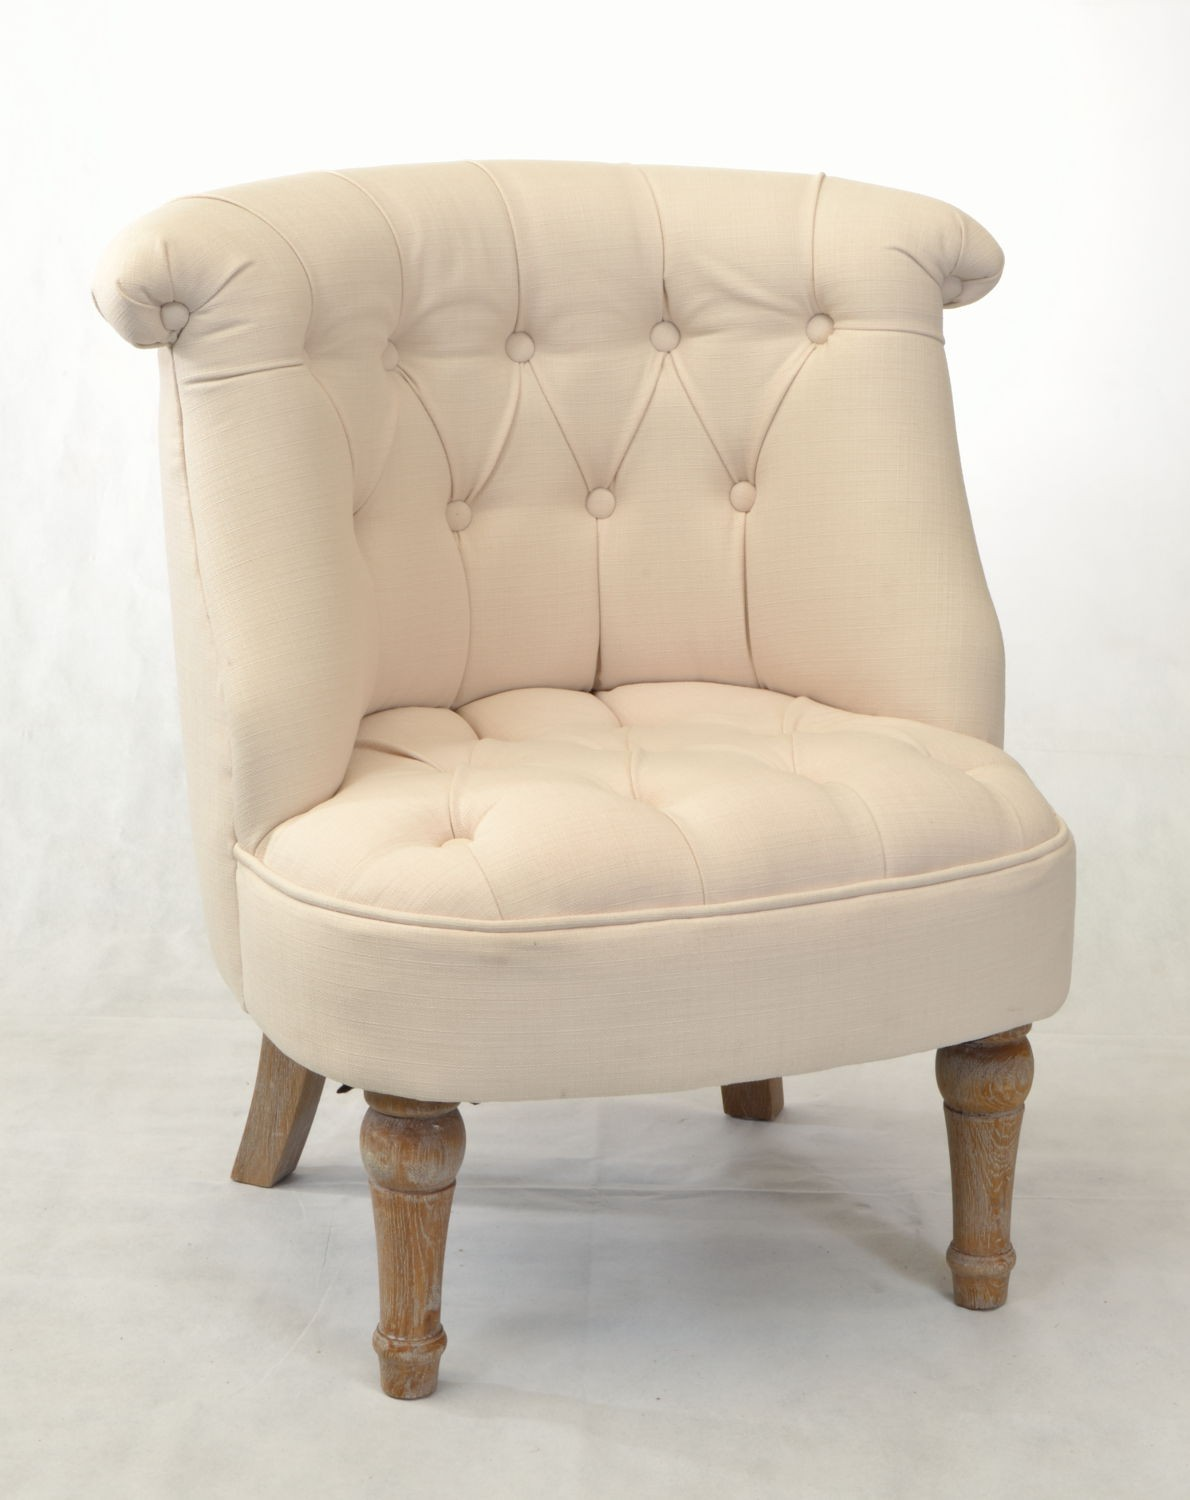 small bedroom chairs buy a small bedroom chair for an accent piece in your room NZGRGPR